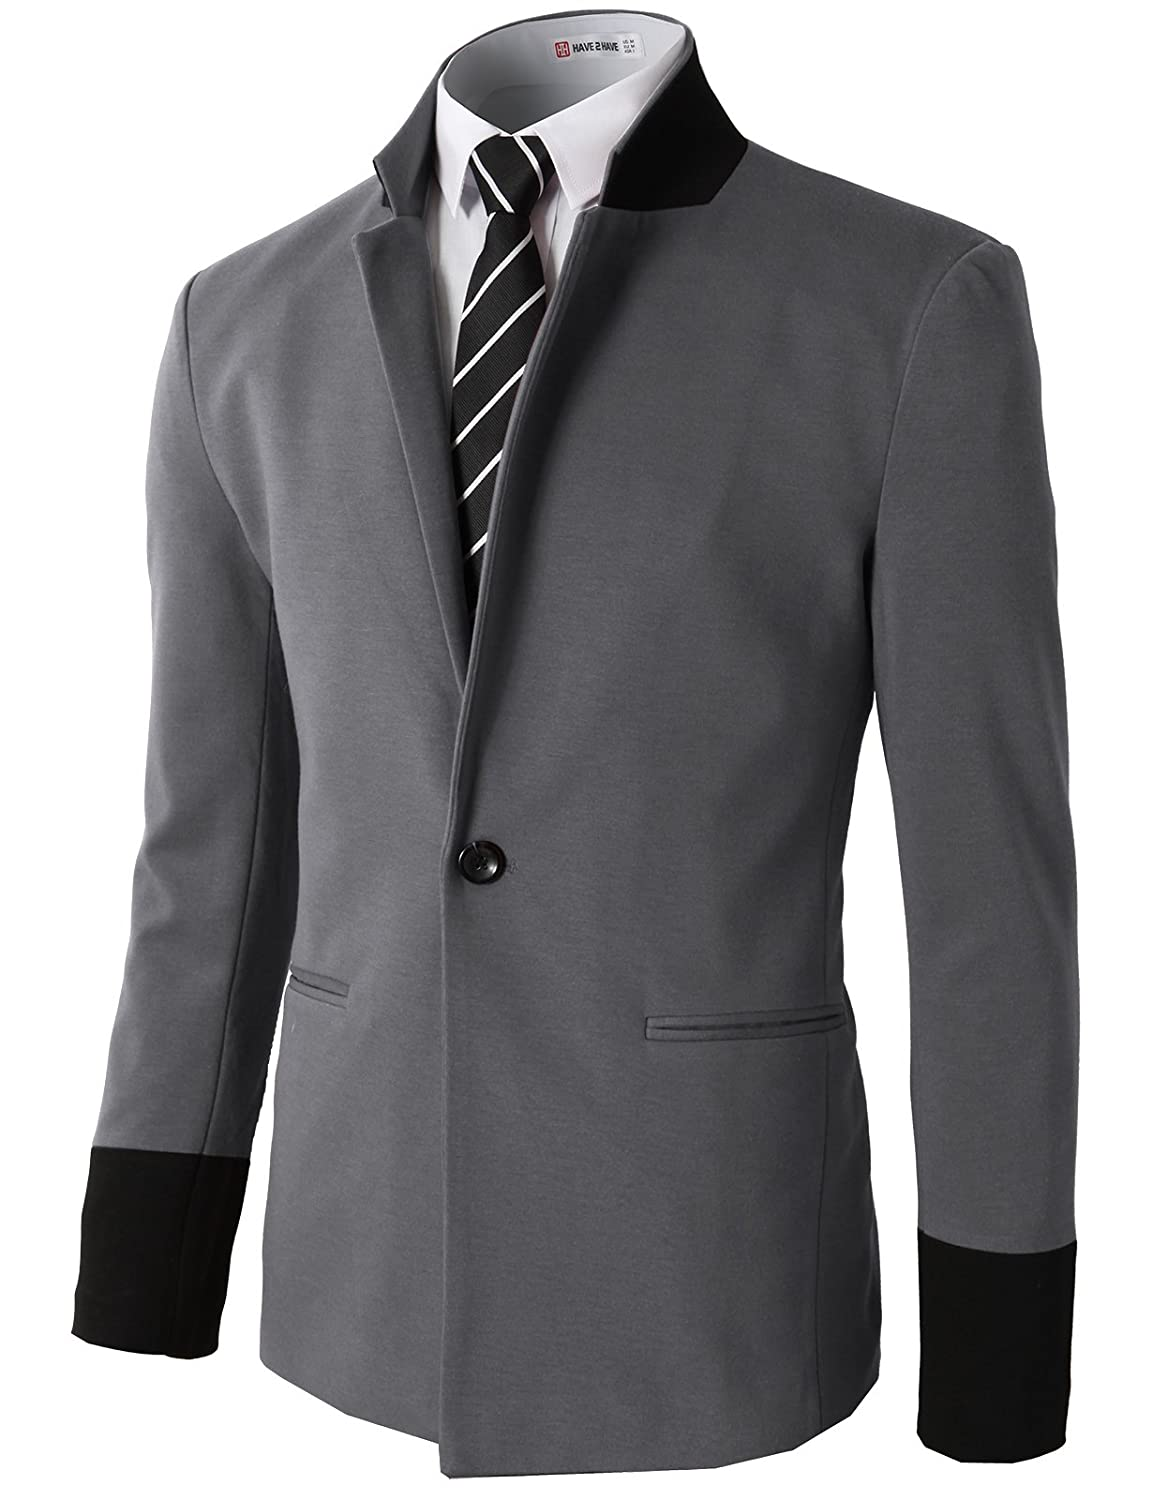 H2H Mens Slim Fit Premium Stylish One Button Suit Coat Jacket Business Blazers #CMOBL014